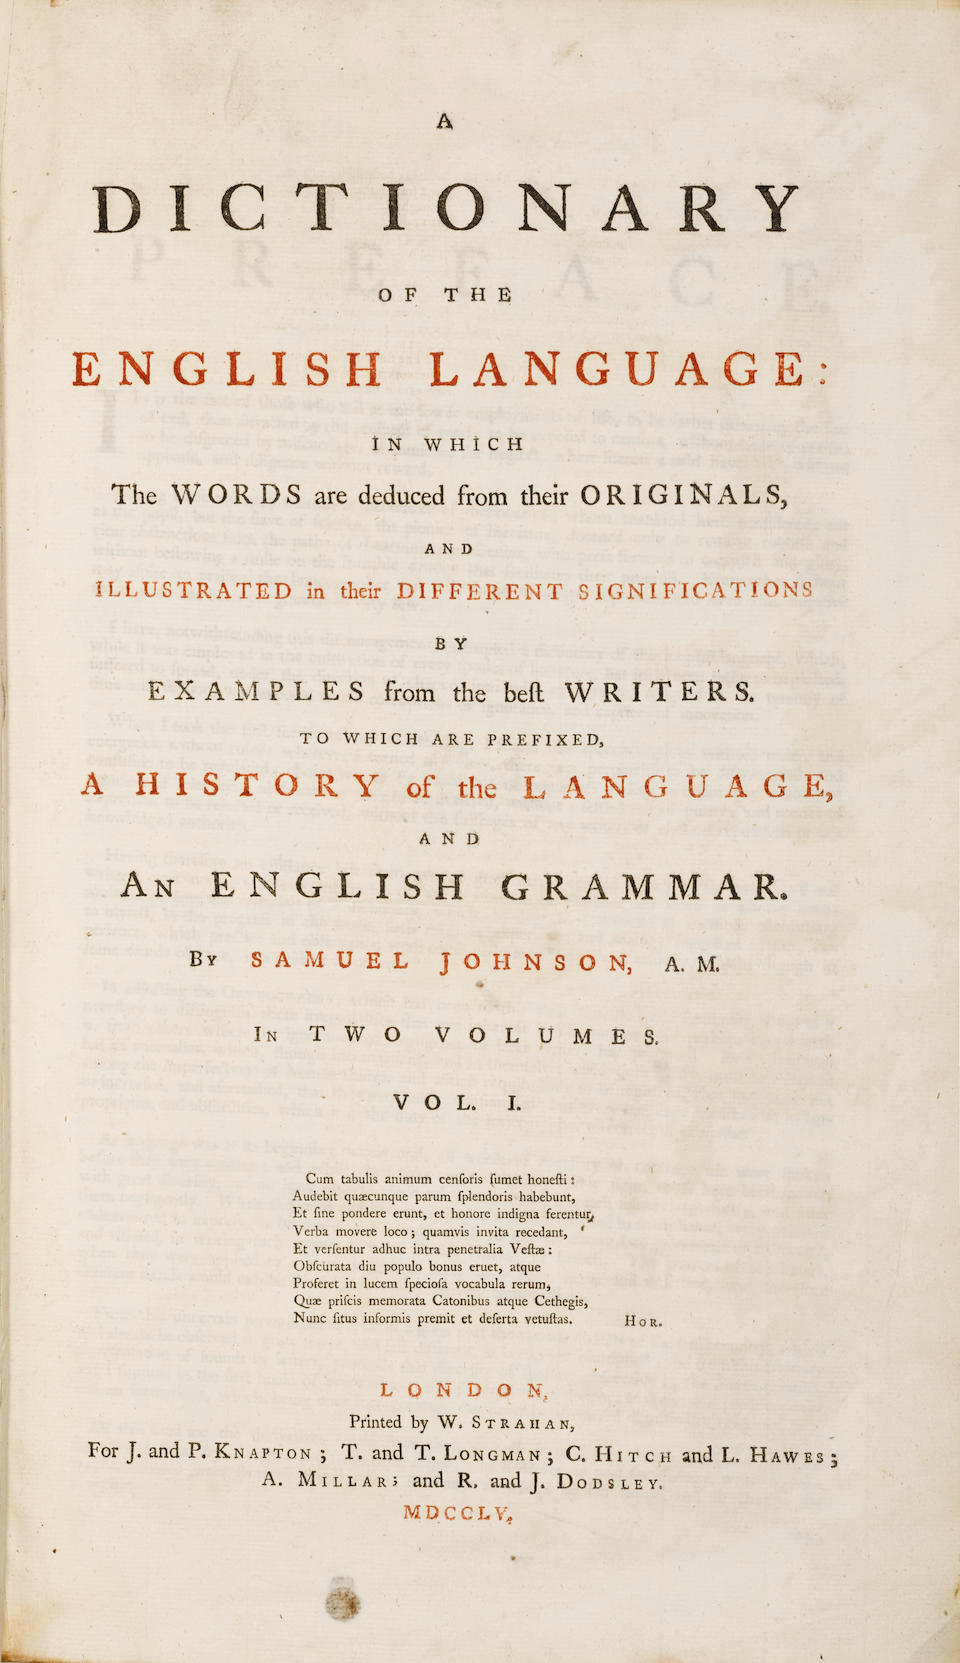 JOHNSON, SAMUEL. 1709-1784. A Dictionary of the English Language: In which the Words are deduced from their Originals, and Illustrated in their Different Significations by Examples from the best Writers.  London: printed by W. Strahan, for Knapton, Longman, Hitch, et al., 1755.